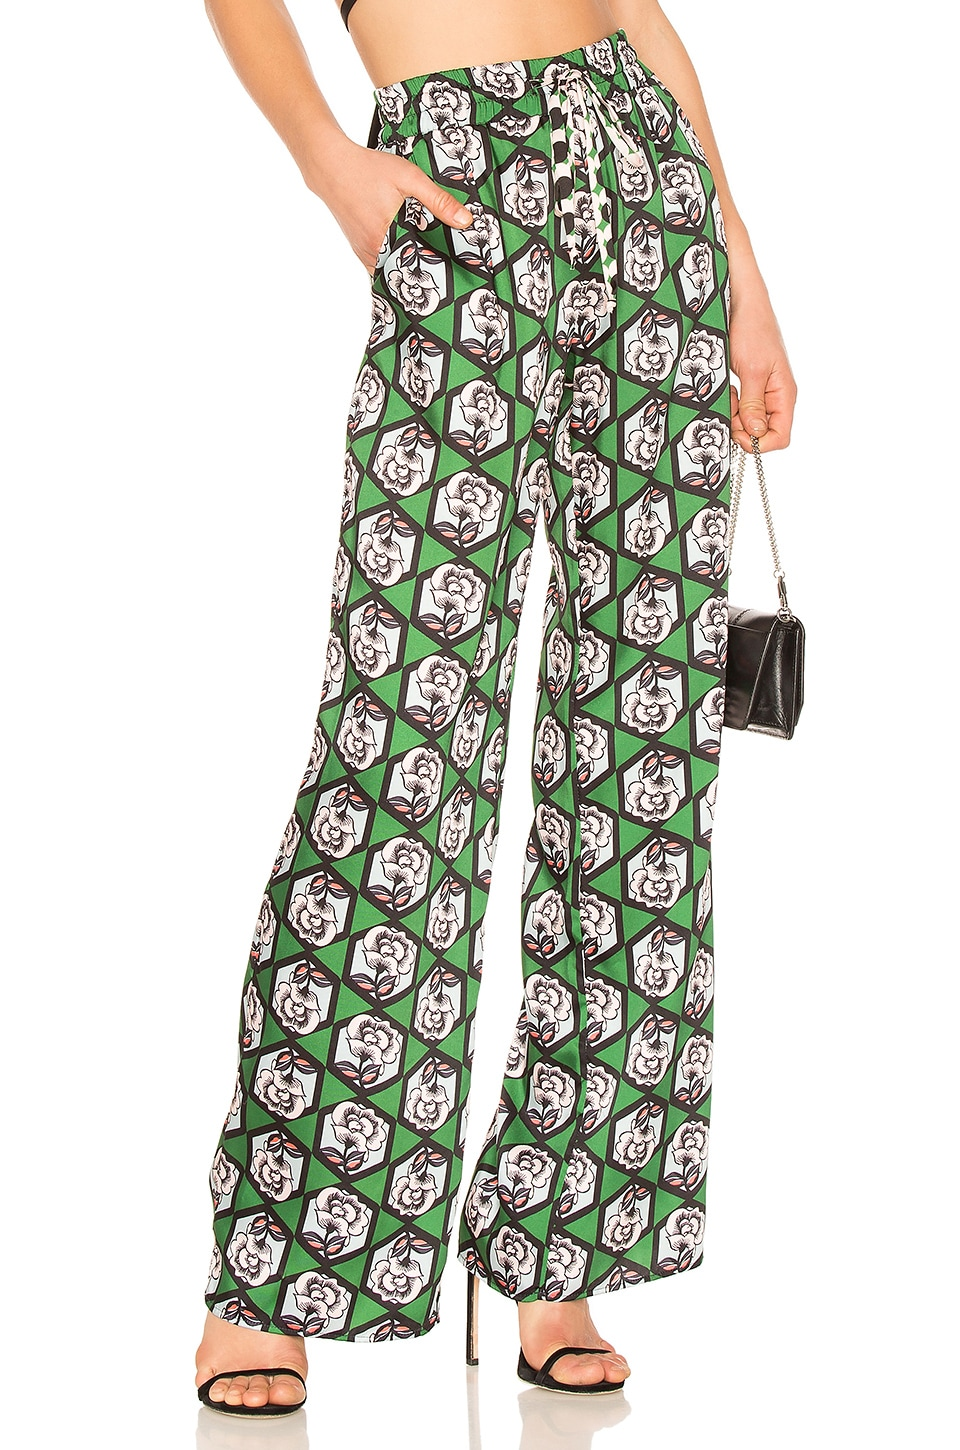 Hexagon Floral Print Pant